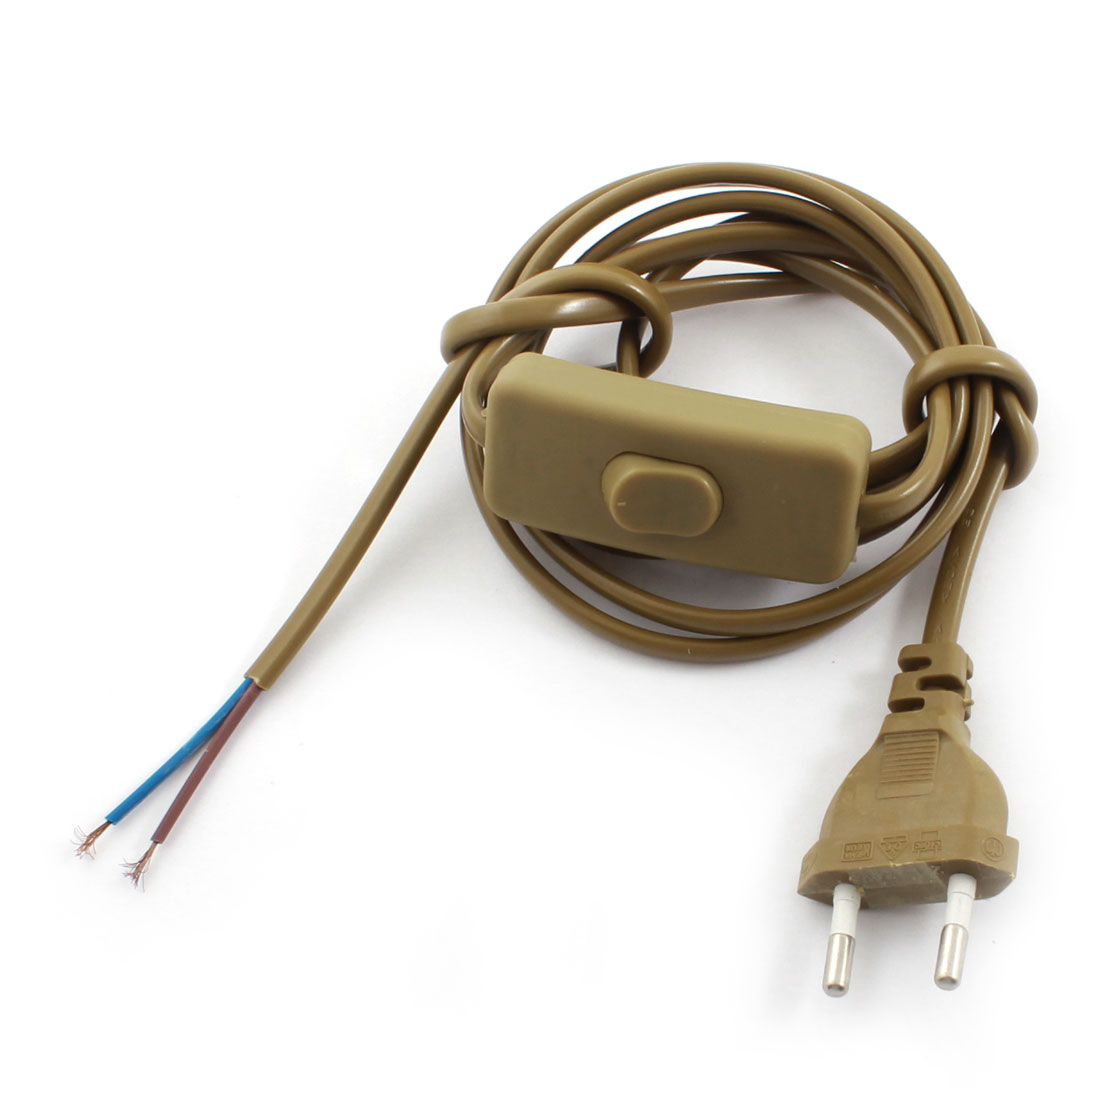 Brown EU Plug 2Pin On-Off SPST Locking Light Power Cord Inline Button Switch 1.8M AC110V AC250V